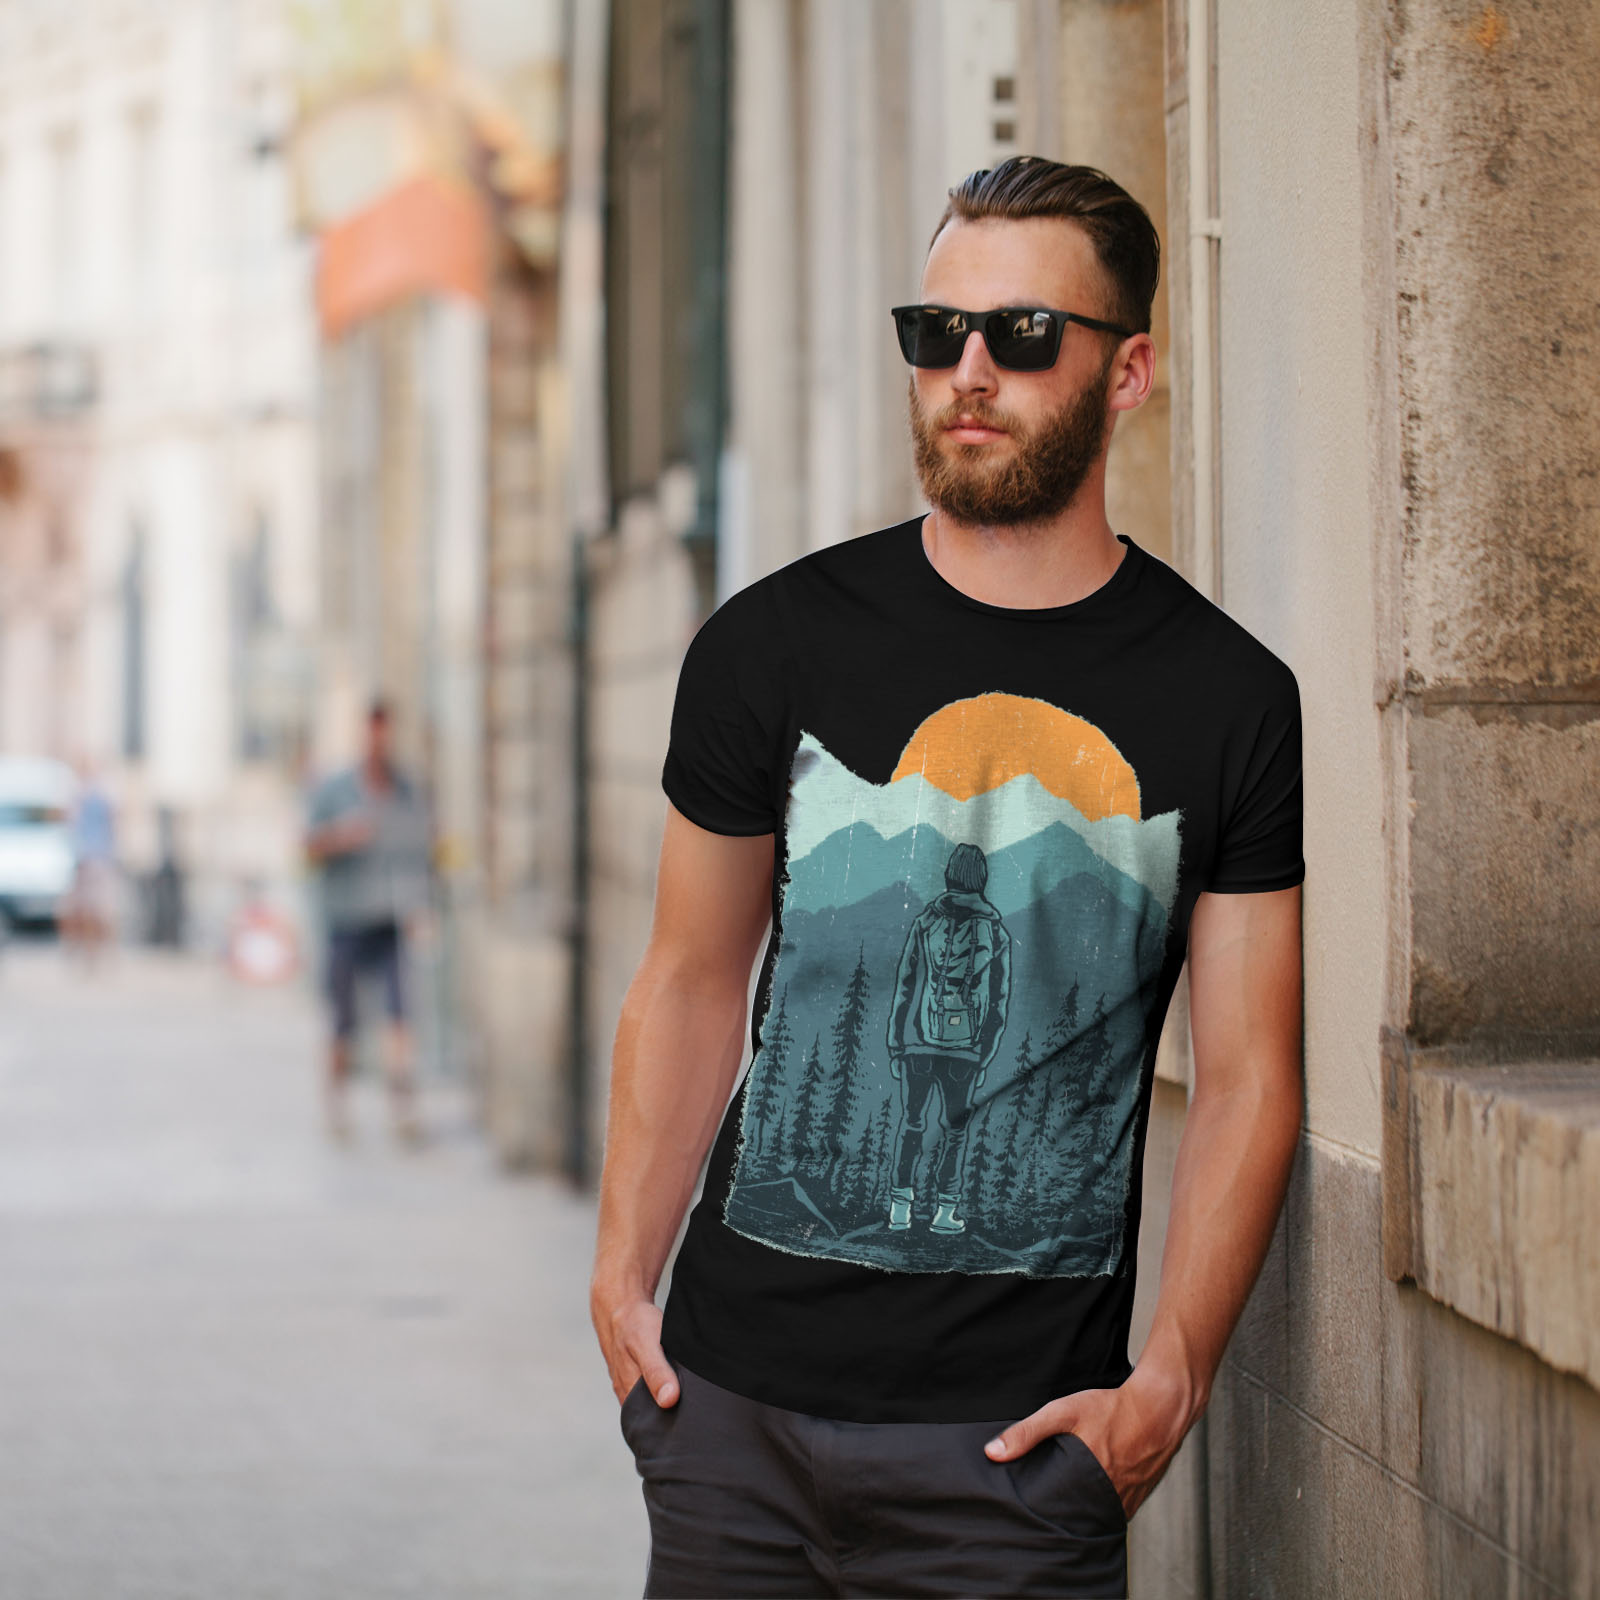 Wellcoda-SUNSET-Wilderness-CAMP-Da-Uomo-T-shirt-Wild-design-grafico-stampato-T-shirt miniatura 5